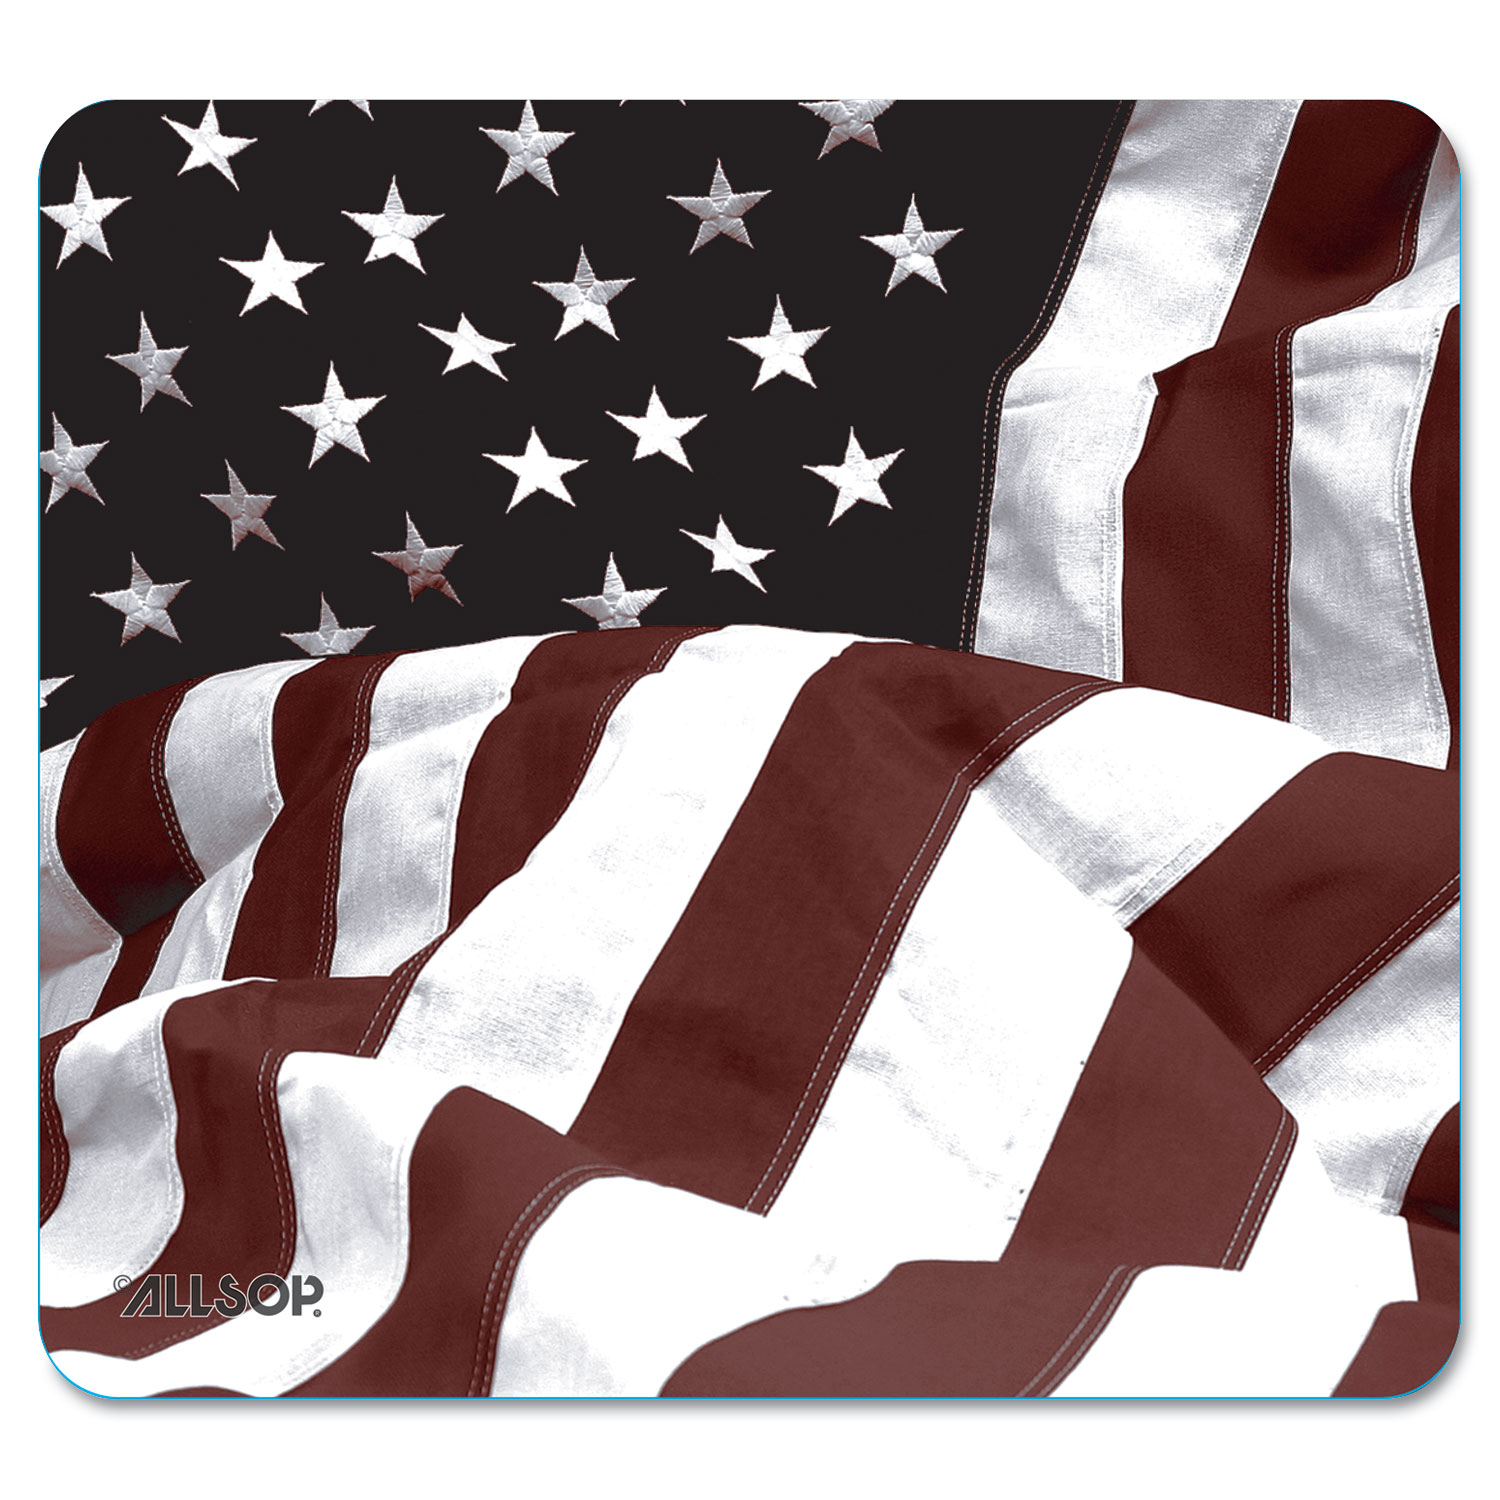 Naturesmart Mouse Pad, American Flag Design, 8 1/2 x 8 x 1/10